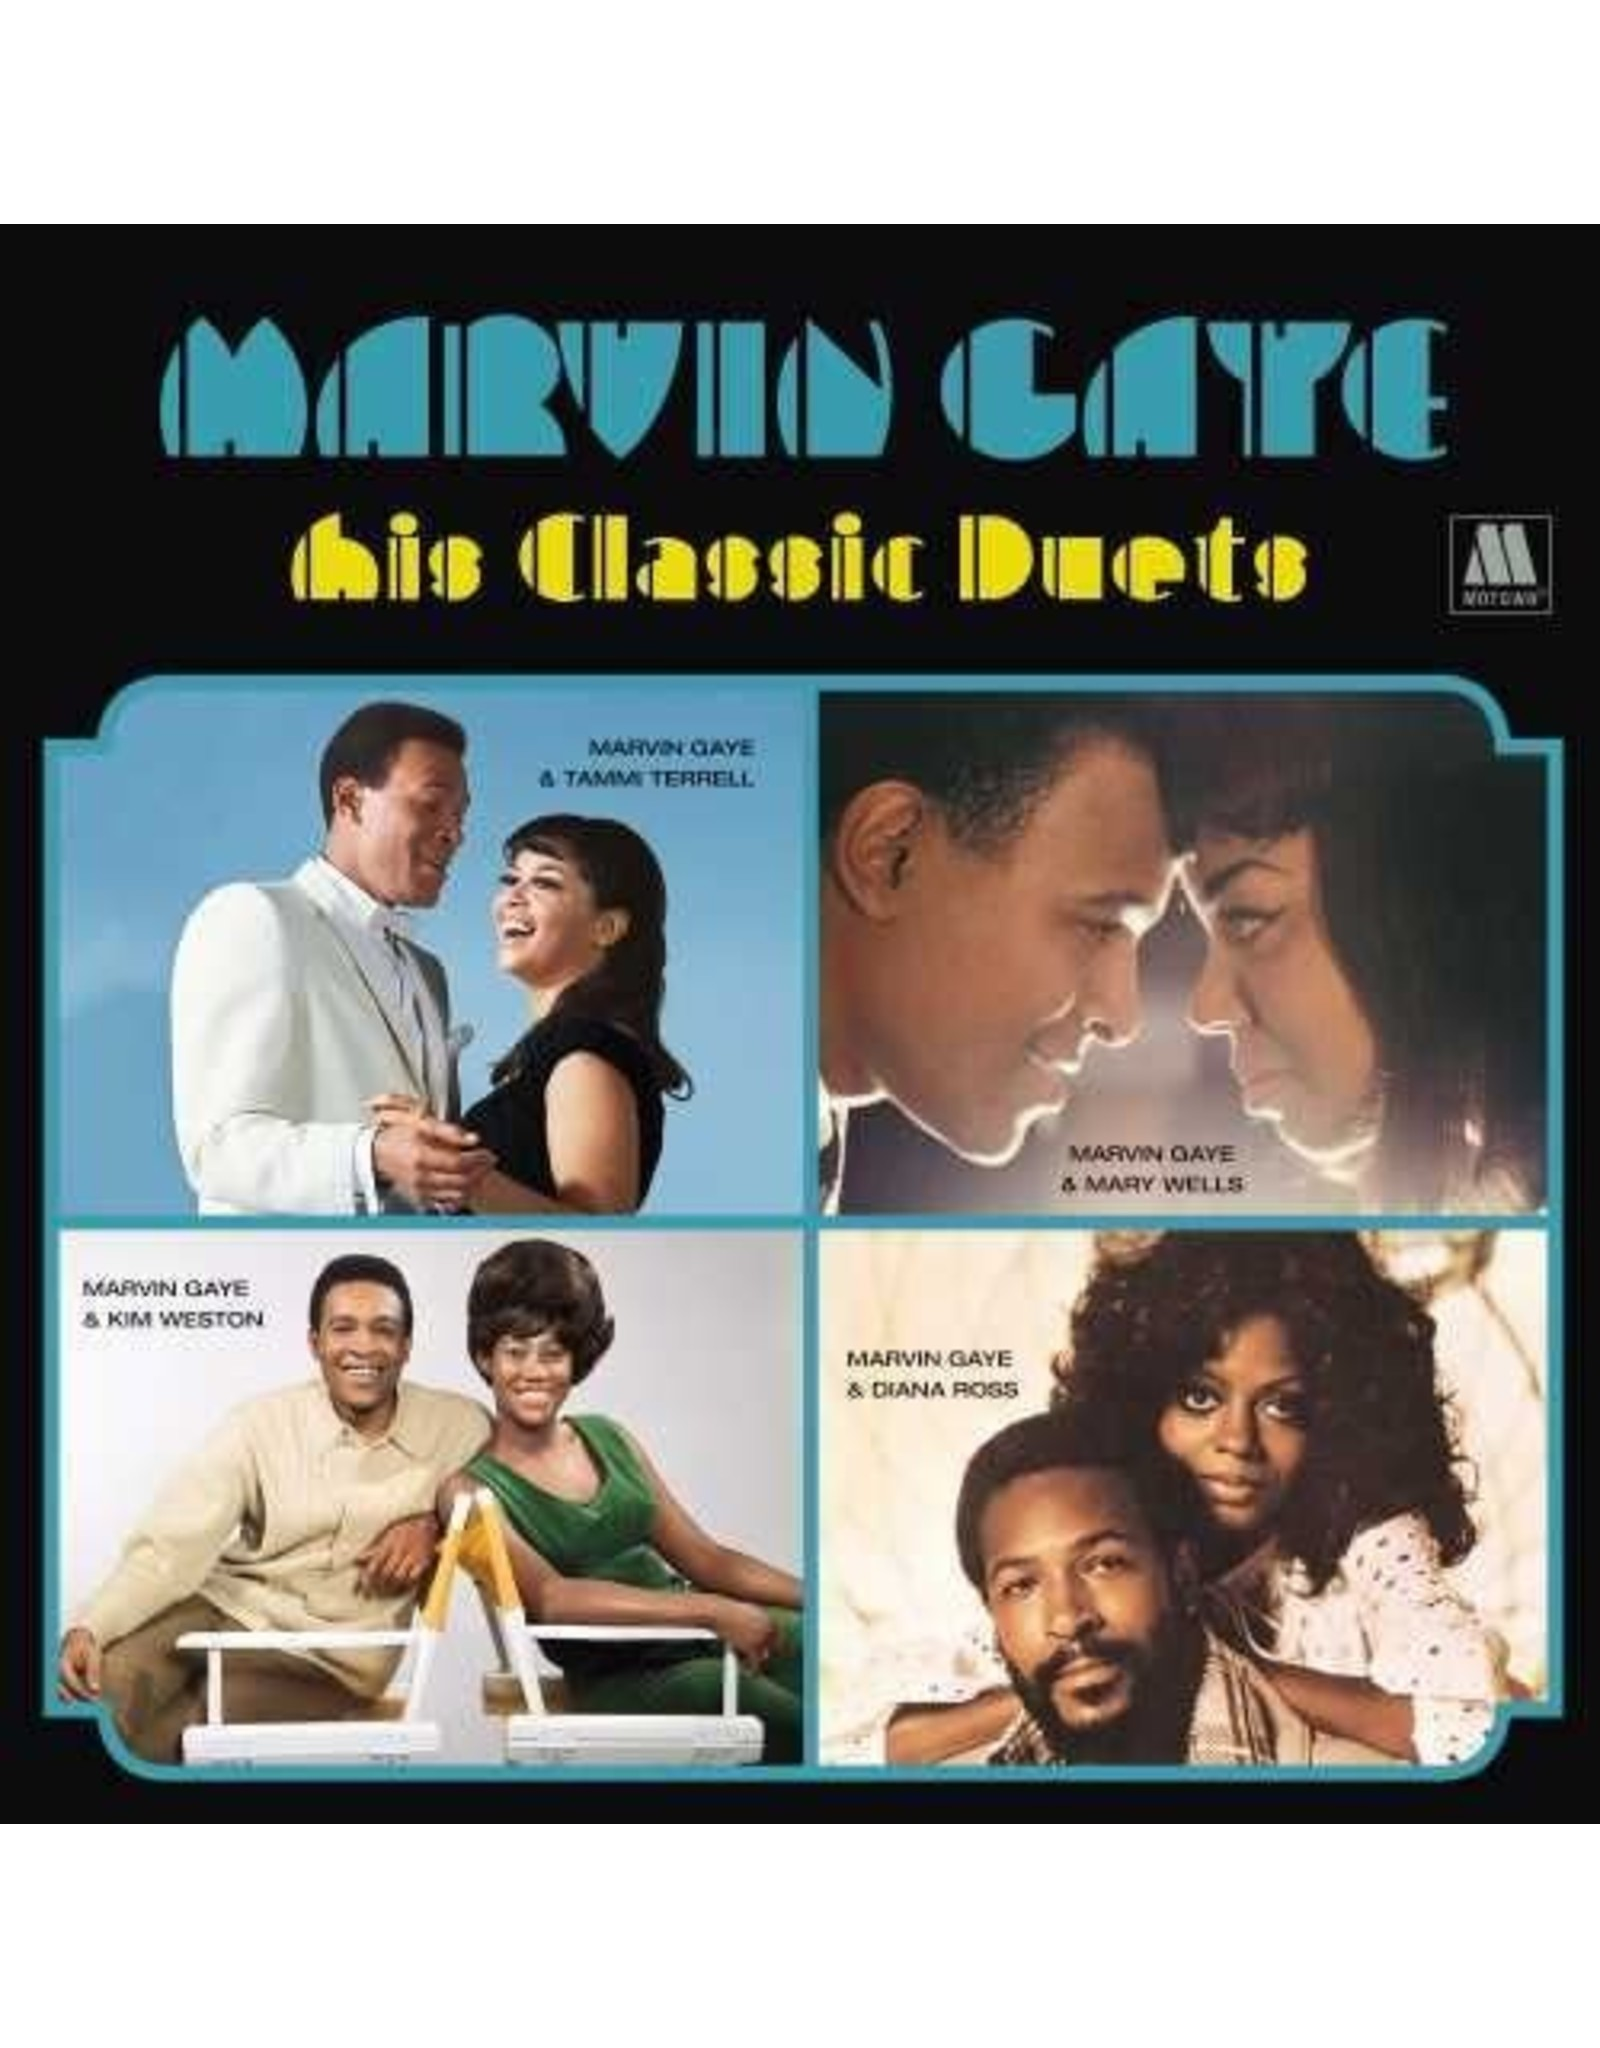 New Vinyl Marvin Gaye - His Classic Duets LP